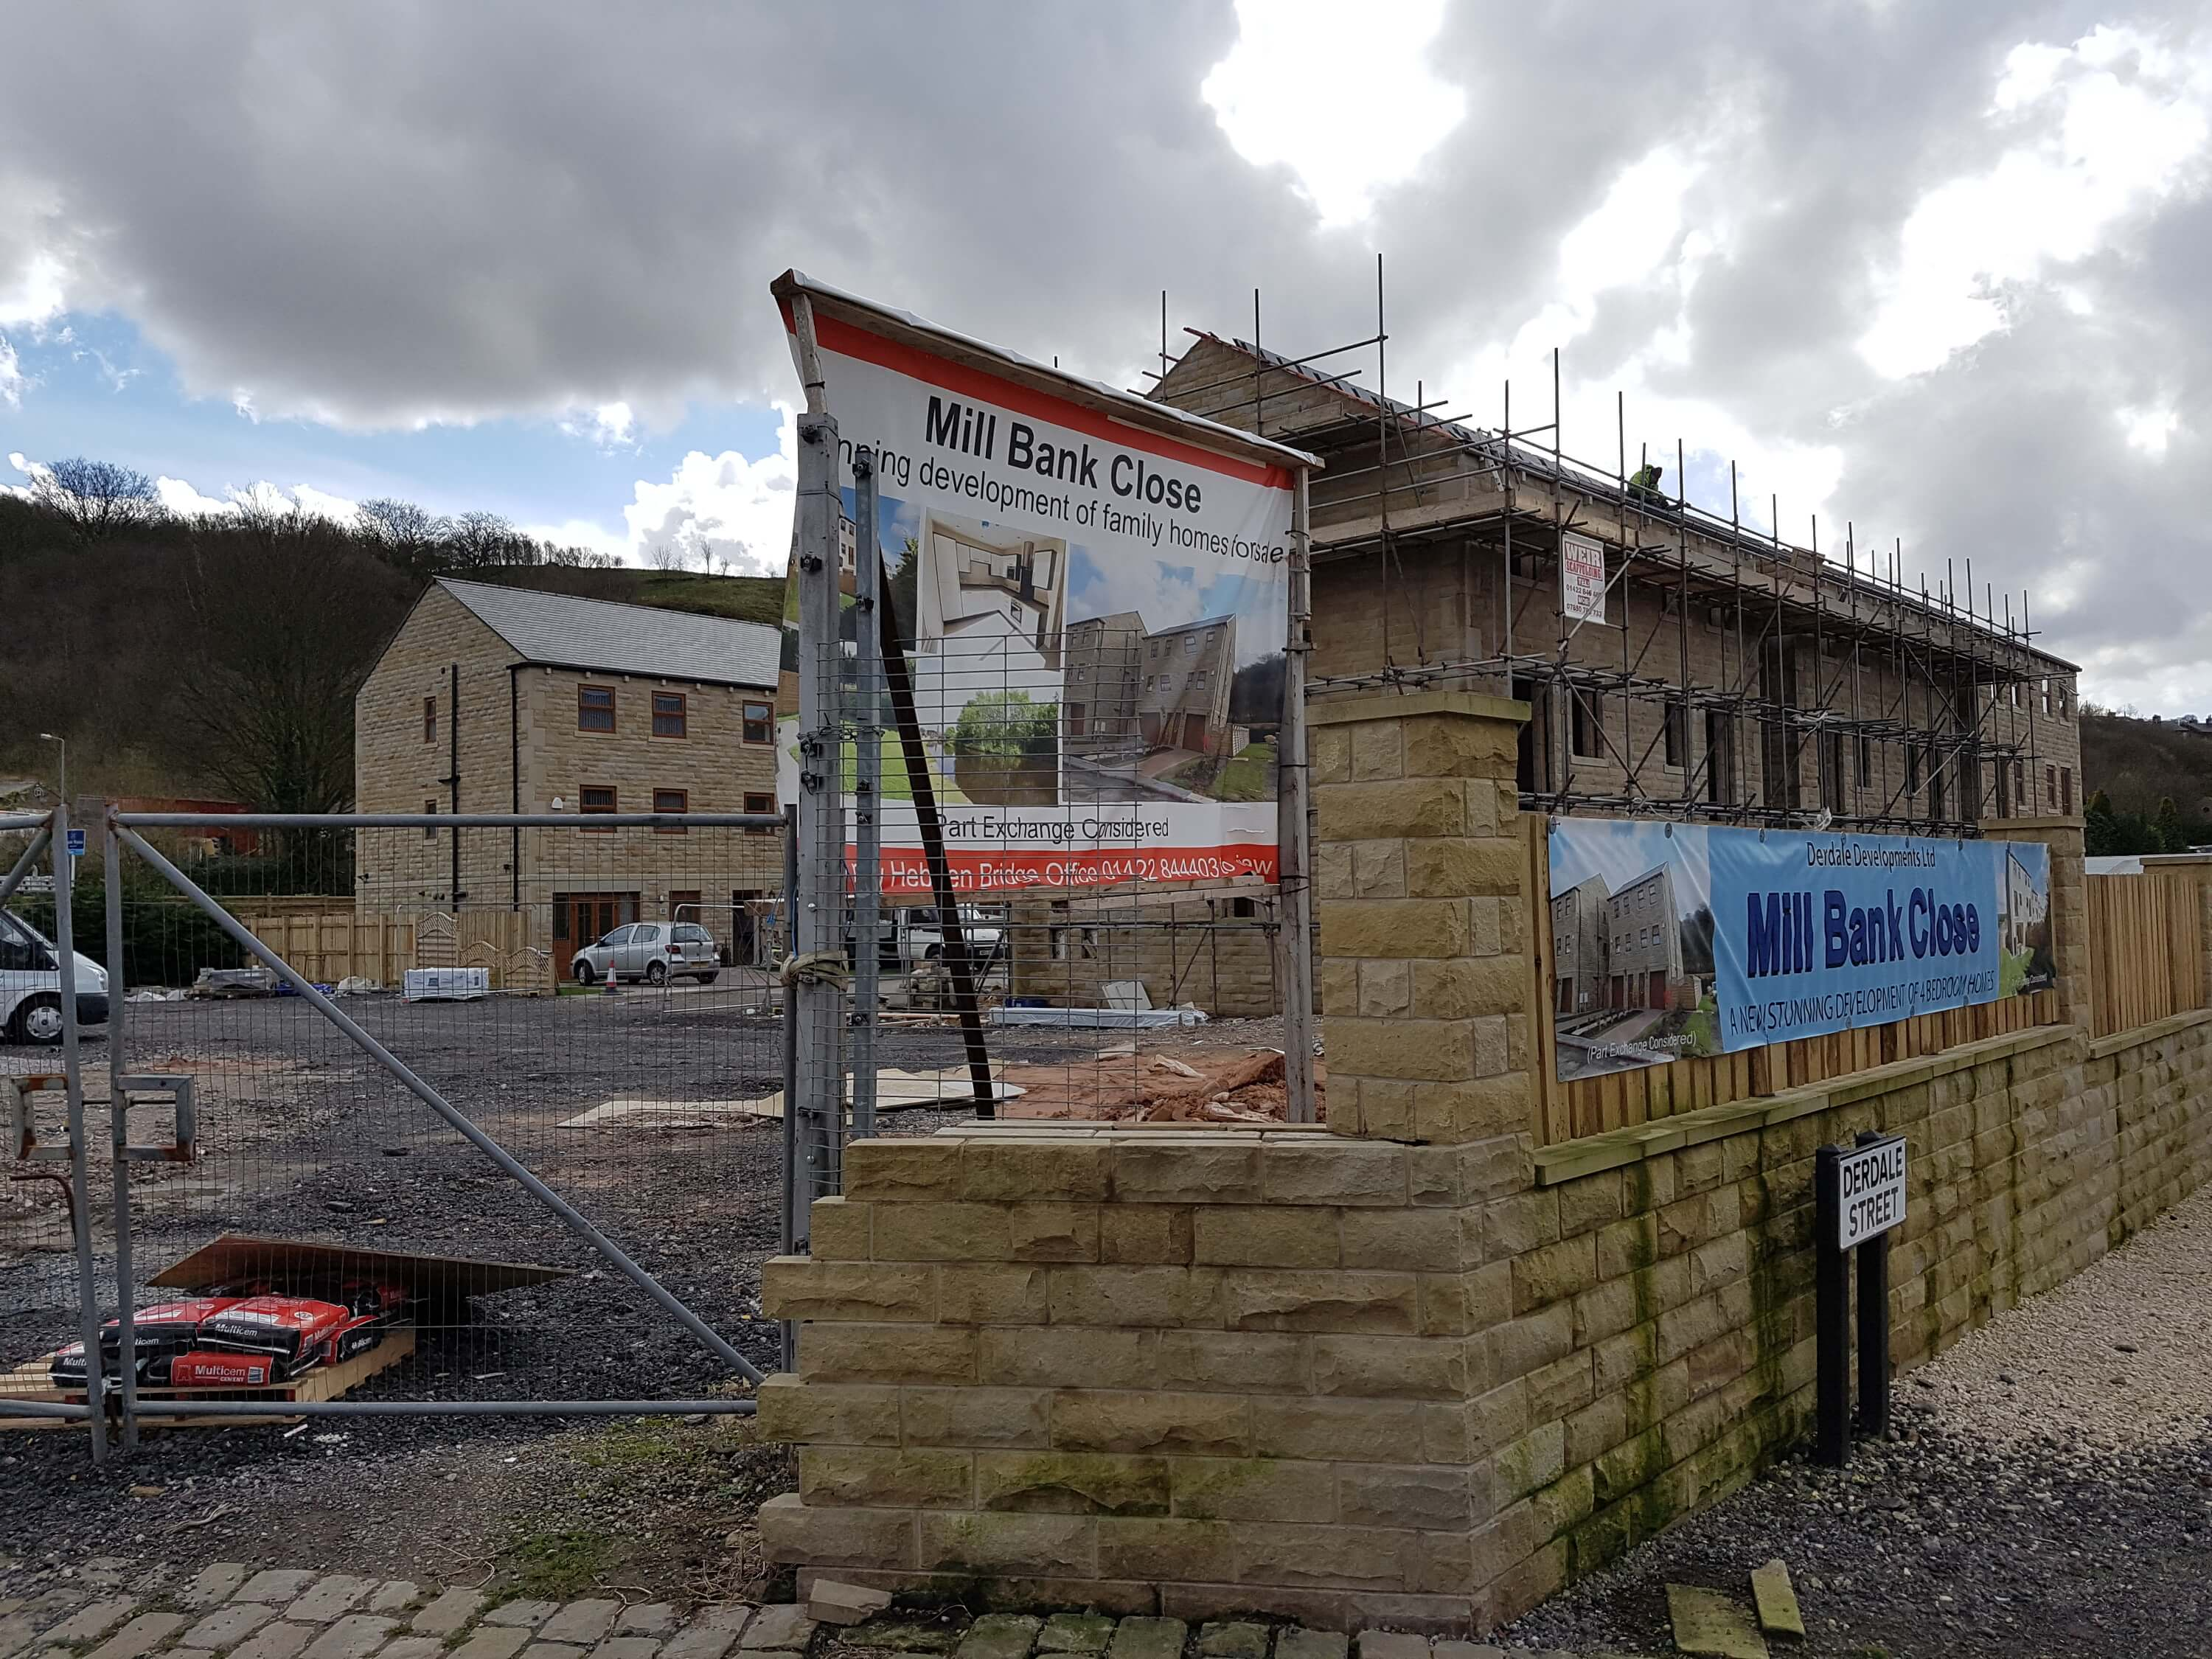 Mill Bank Close Construction Site